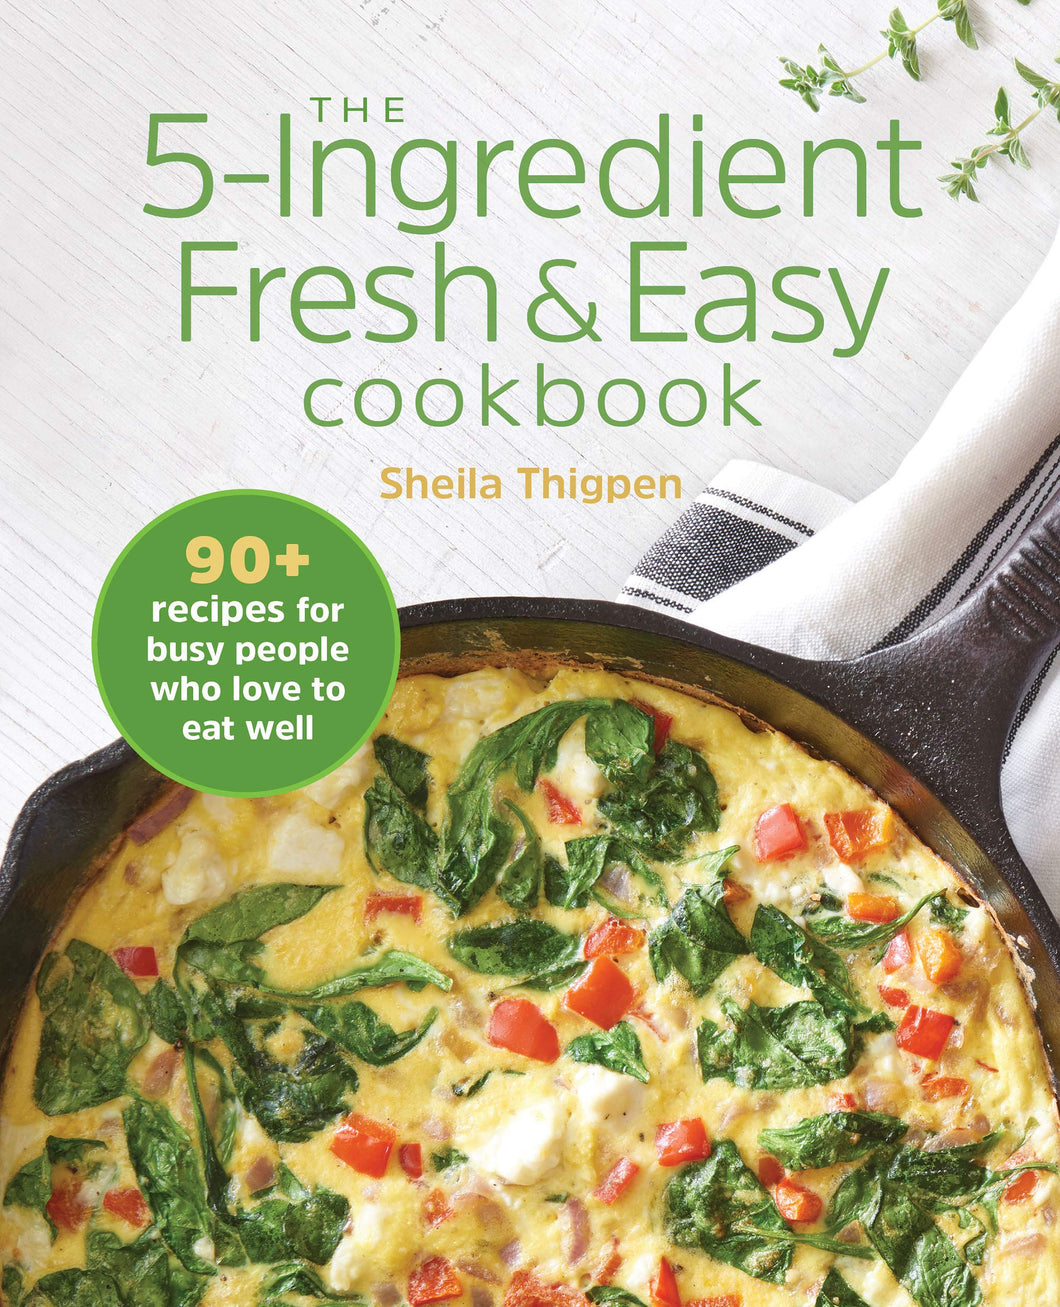 The 5-Ingredient Fresh and Easy Cookbook: 90+ Recipes For Busy People Who Love to Eat Well - Tolerant Planet